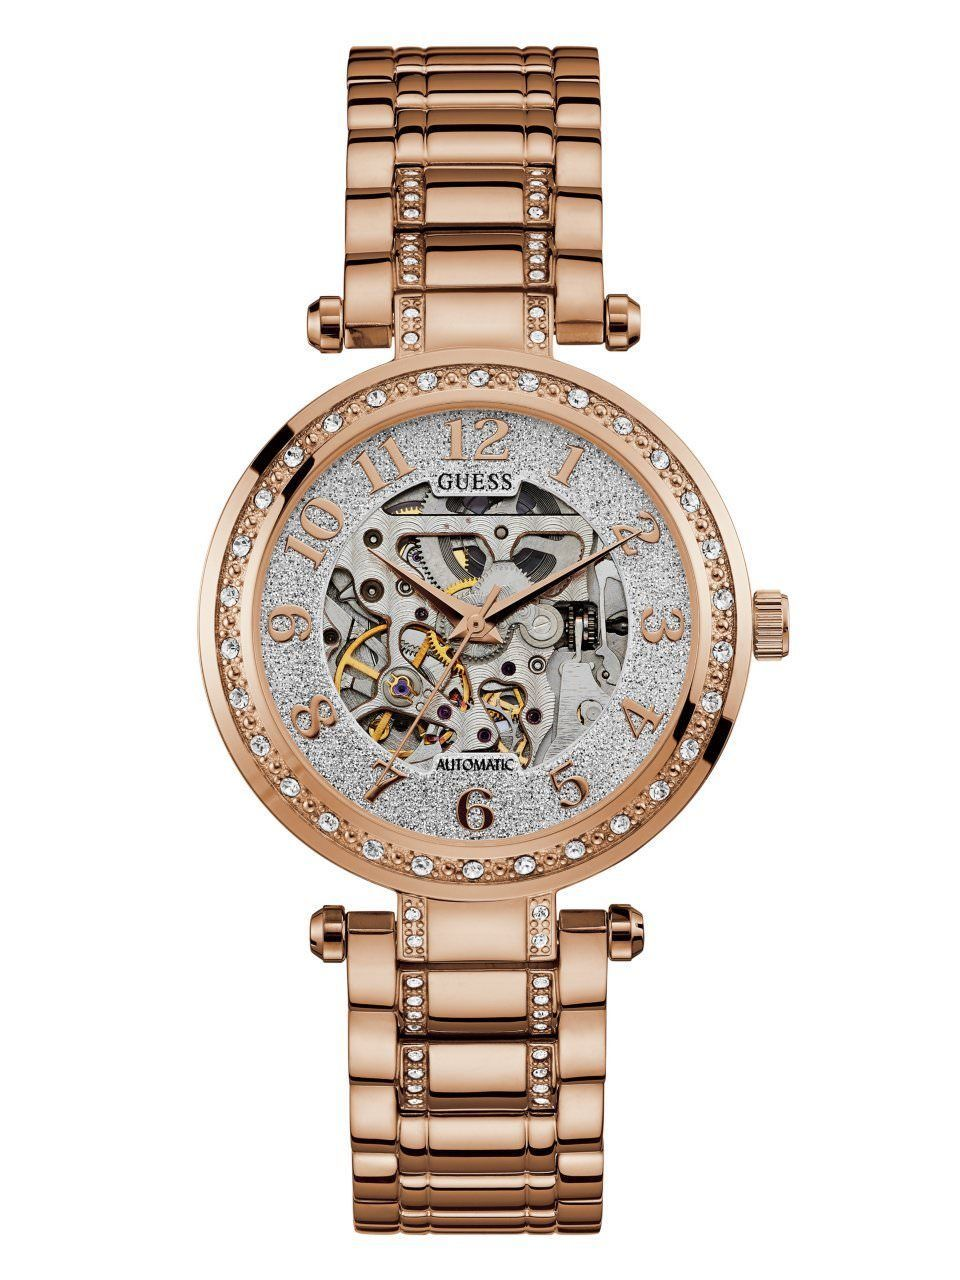 9083359bcc ... BRANDGUESS MPNU1015L2 UPC0091661478963 eBay Product ID  (ePID)23017253572 Product Key Features Band MaterialStainless Steel Face  ColorSilver StyleLuxury.